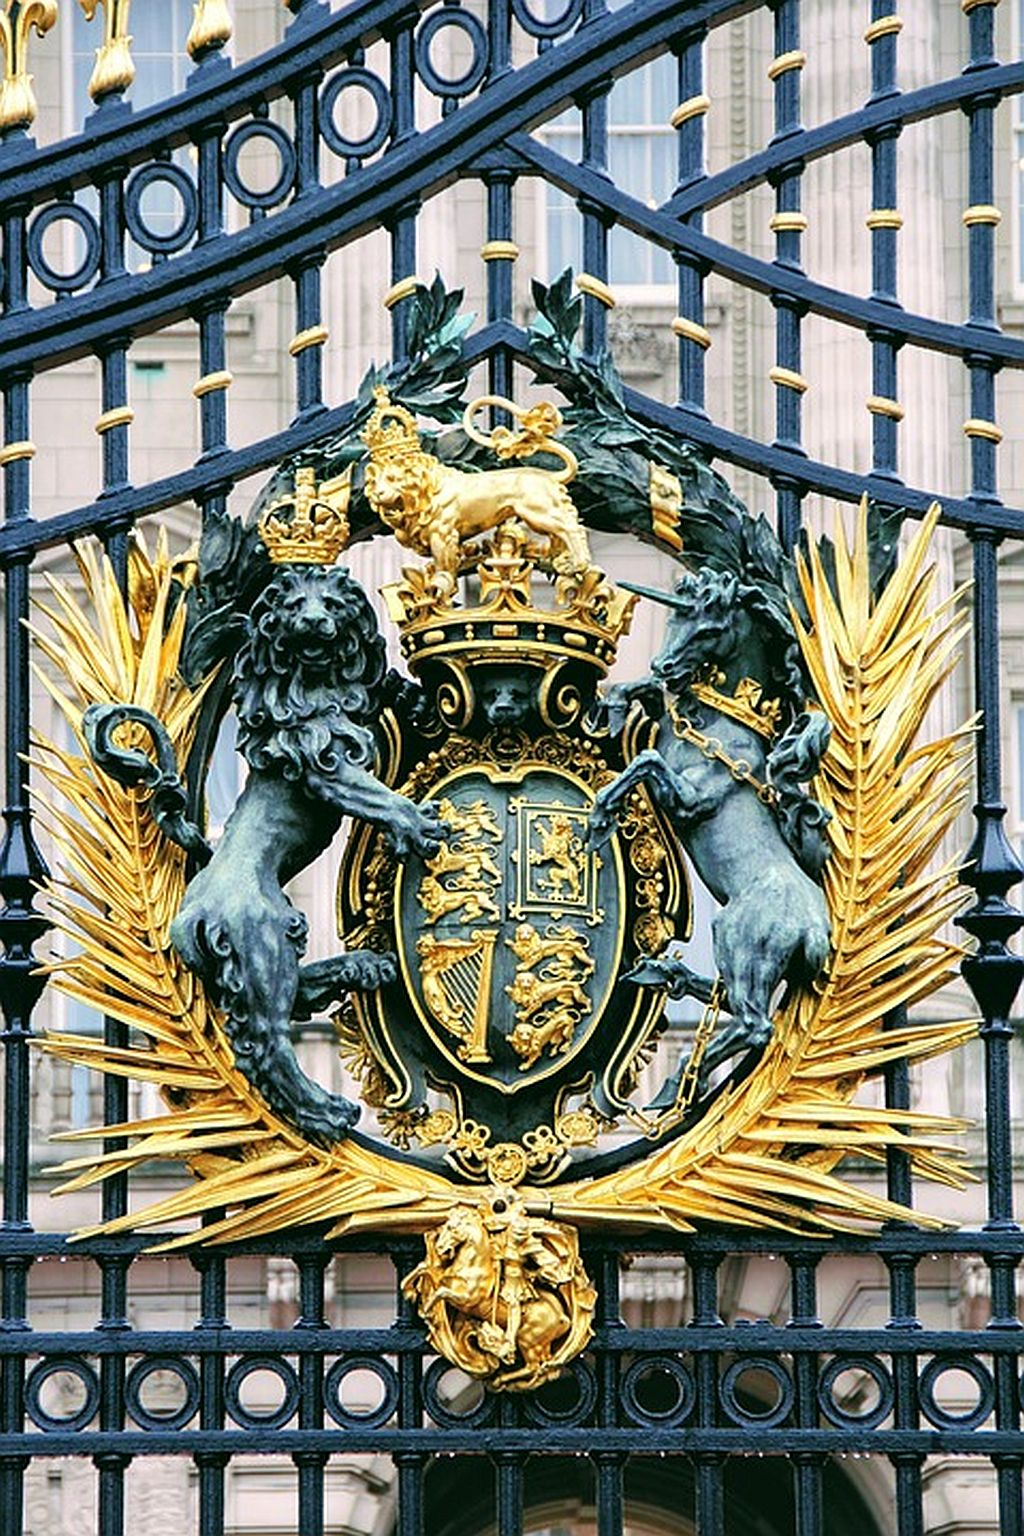 See the Buckingham Palace Gates on your England trip